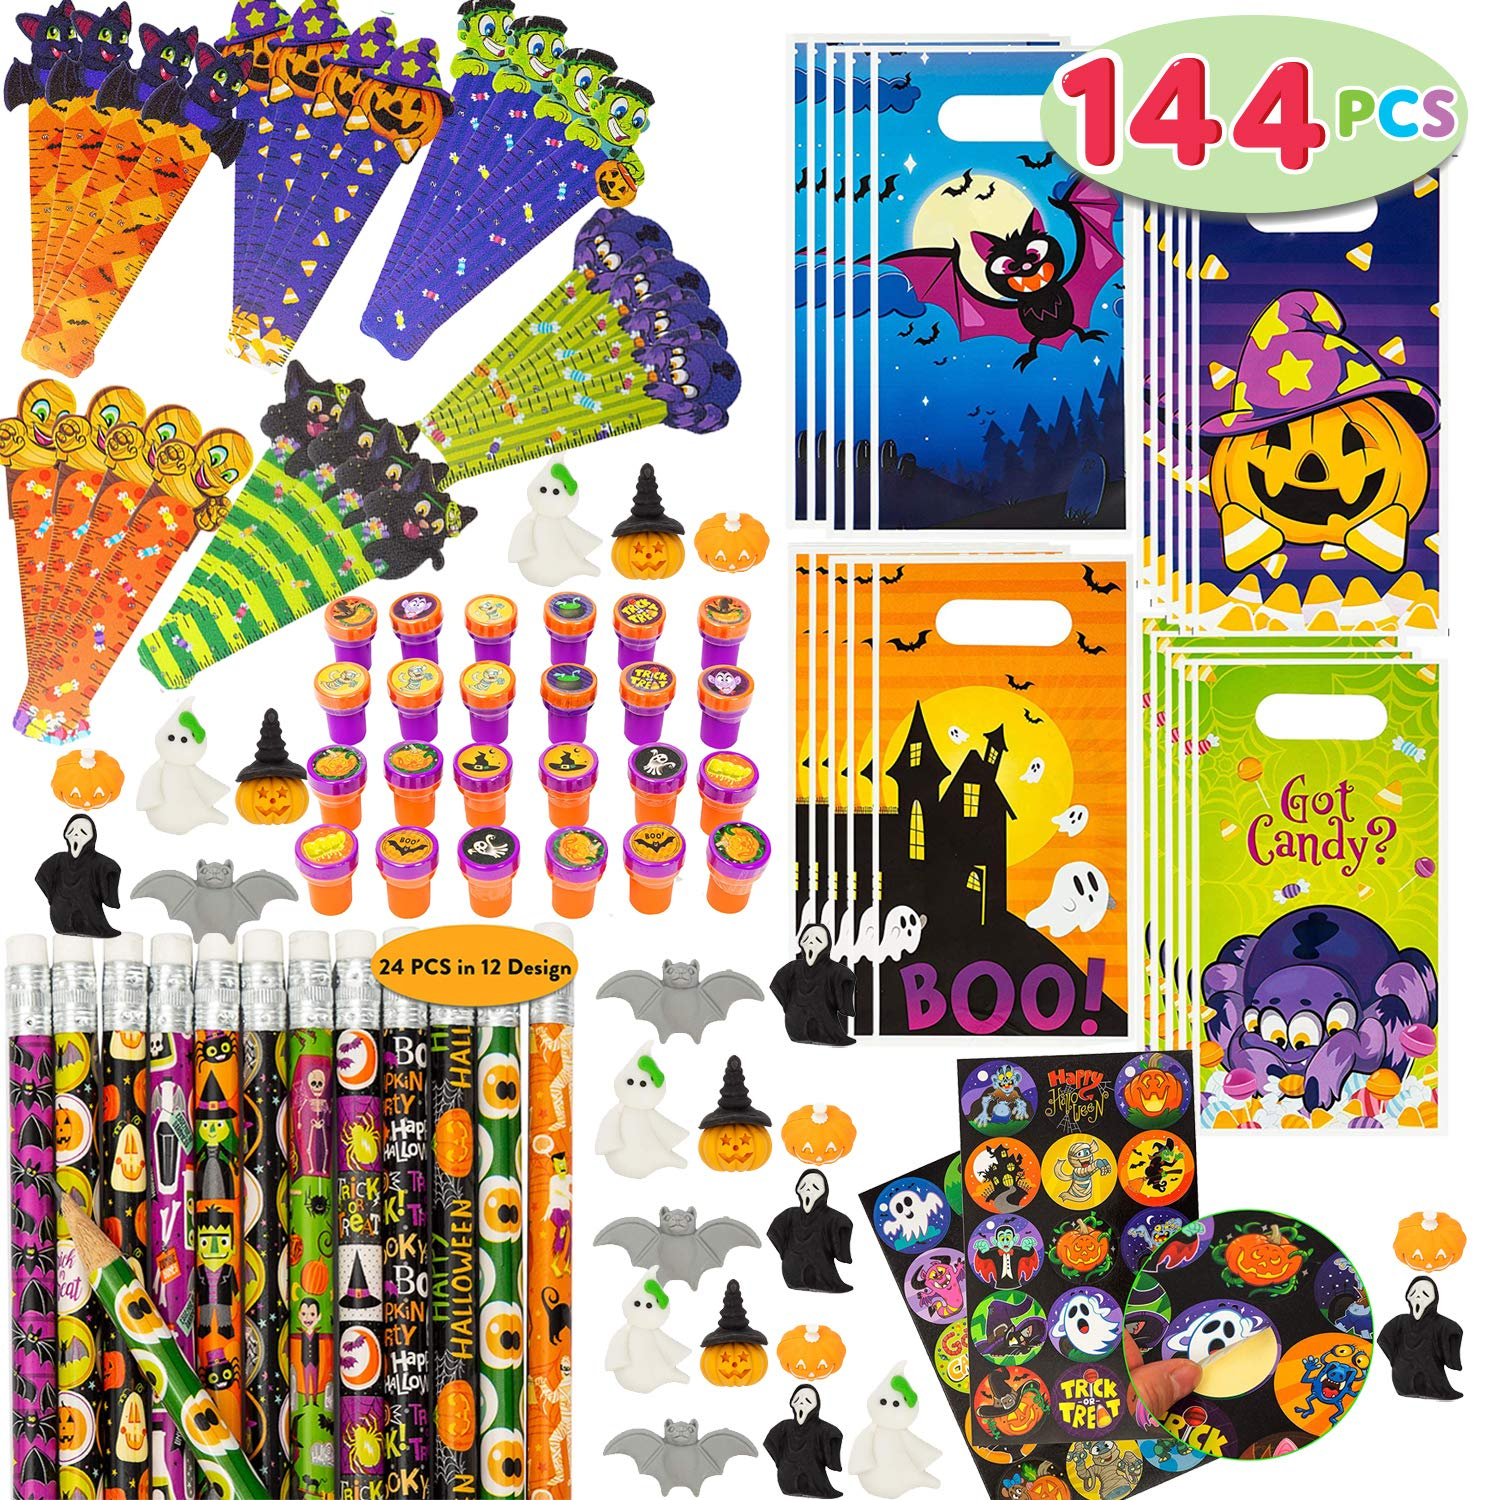 JOYIN 144 Pieces 24 Pack Assorted Halloween Themed Stationery Kids Gift Set Trick Treat Price Party Favor Toy Including Halloween Pencils, Rulers, Stickers, Stamps and Erasers in Trick or Treat Bags by JOYIN